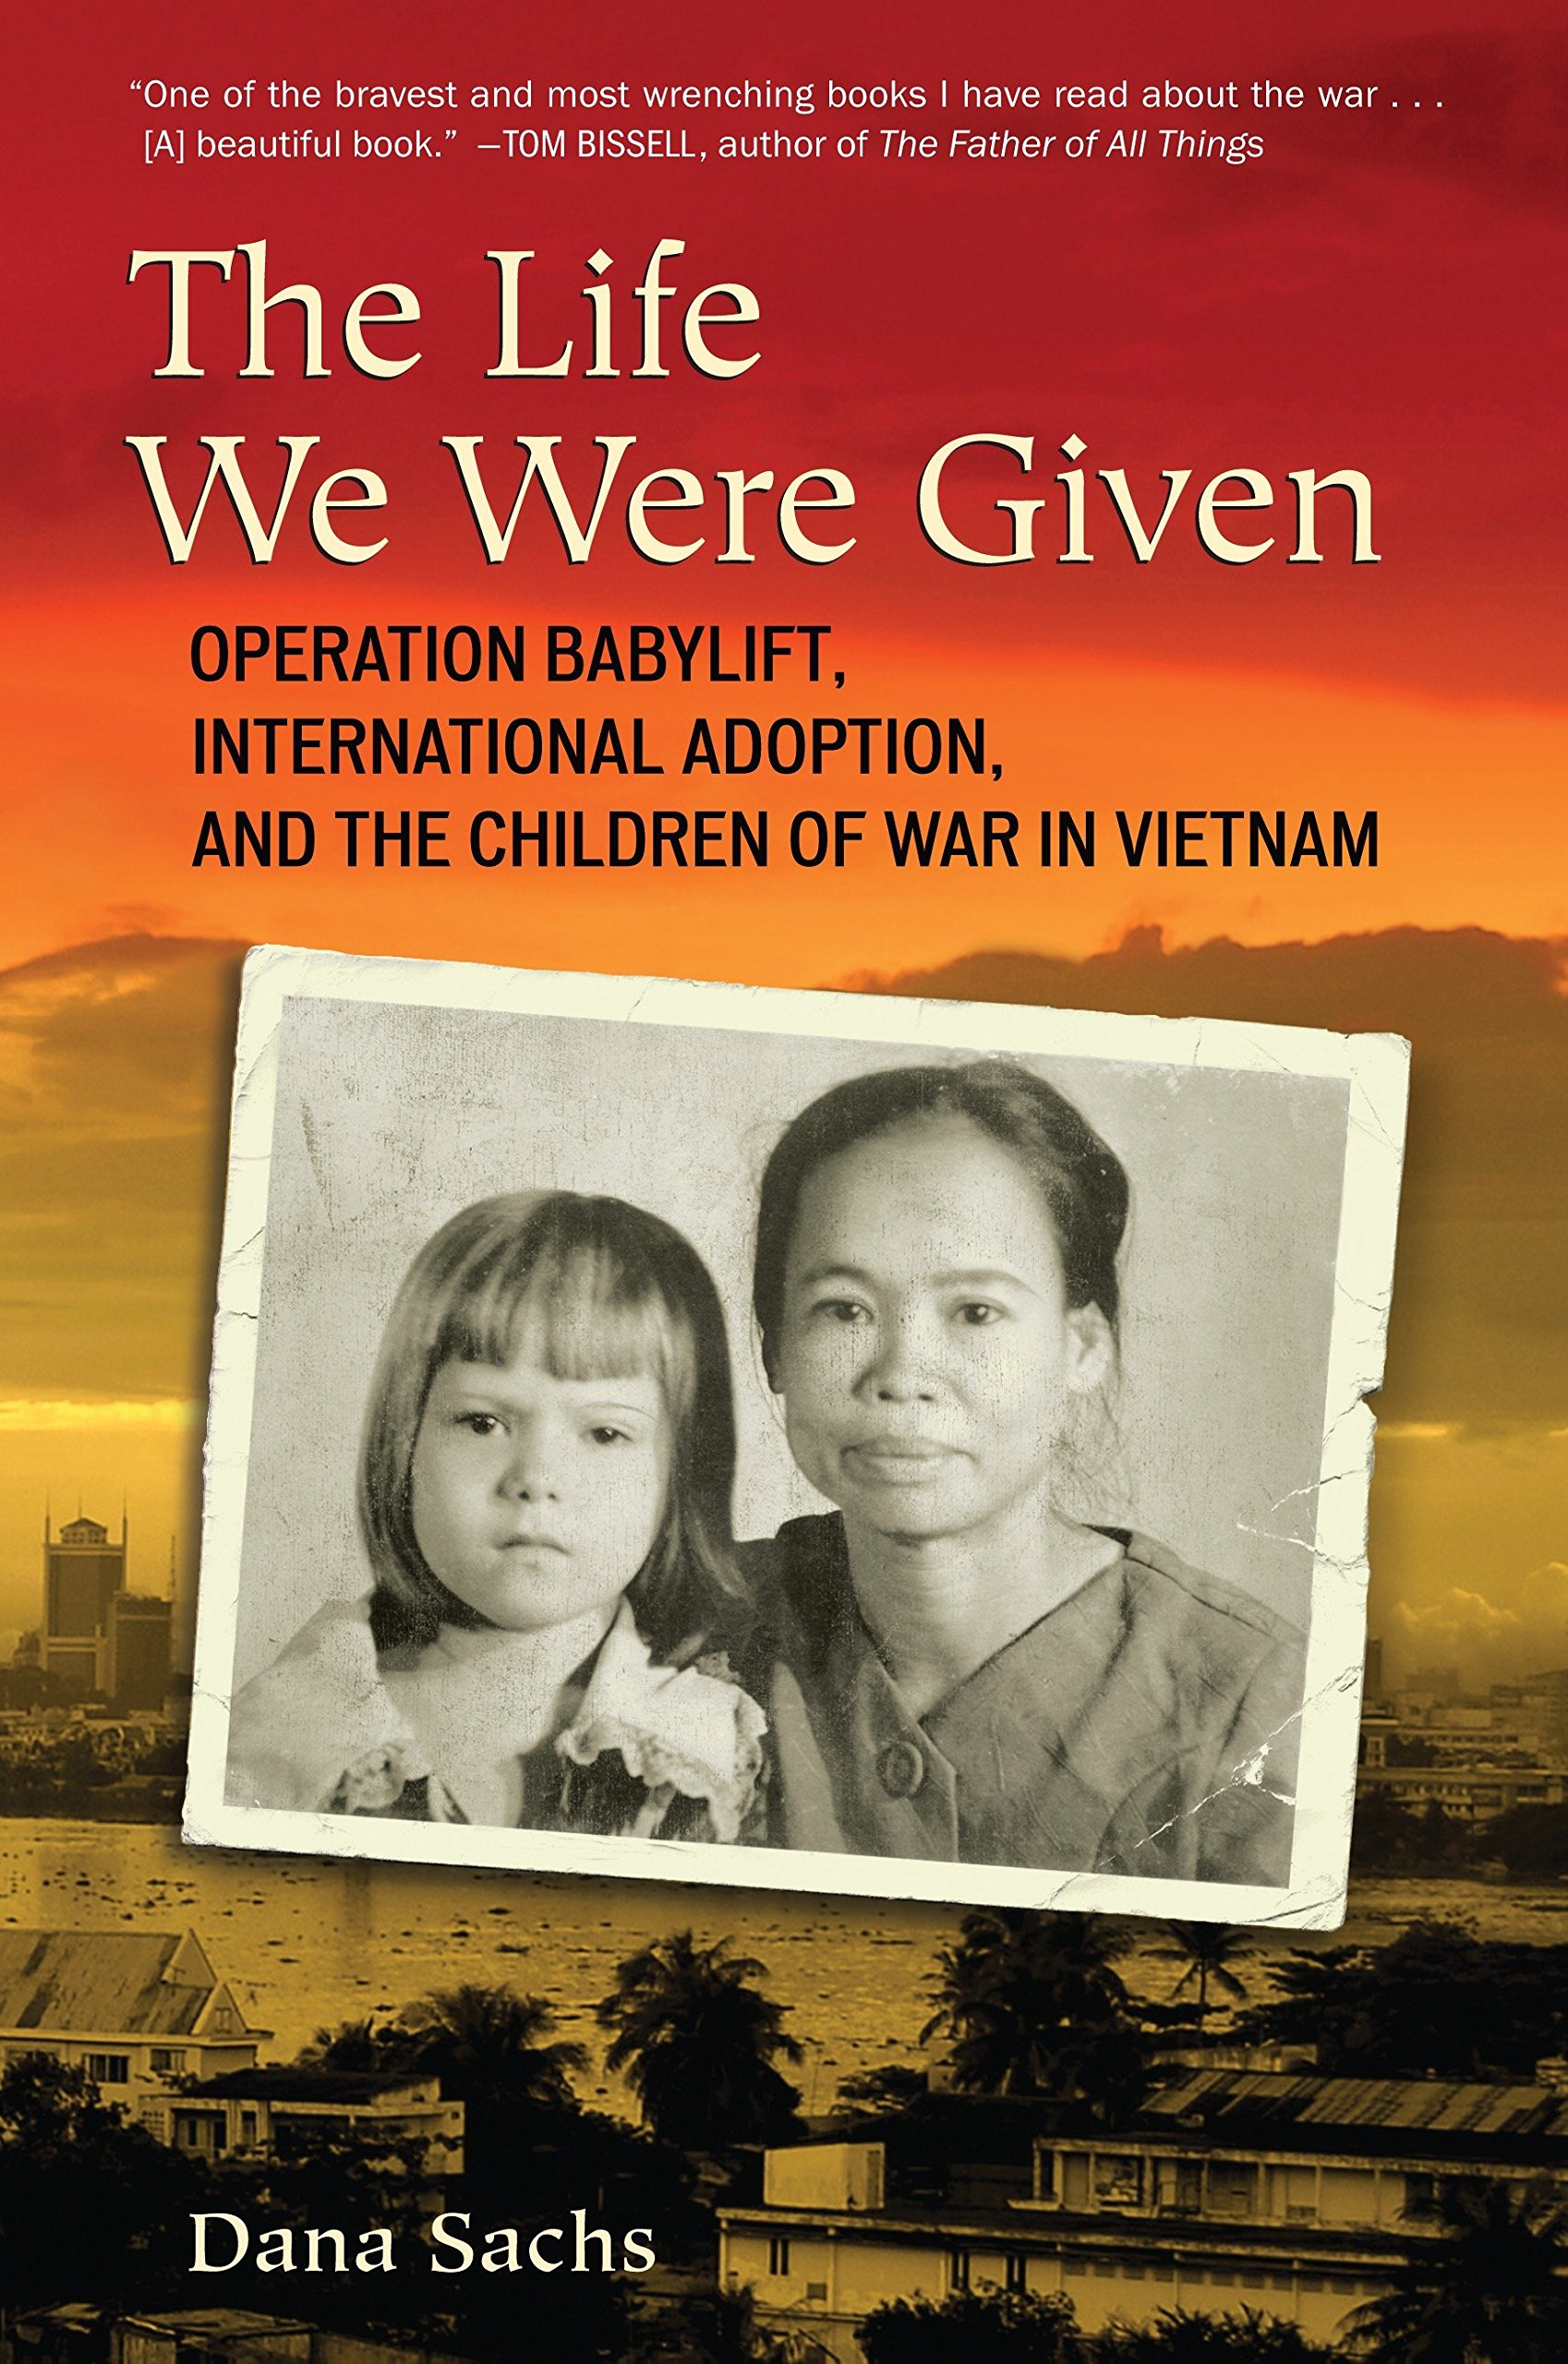 The Life We Were Given: Operation Babylift, International Adoption, and the  Children of War in Vietnam Paperback – Jul 26 2011